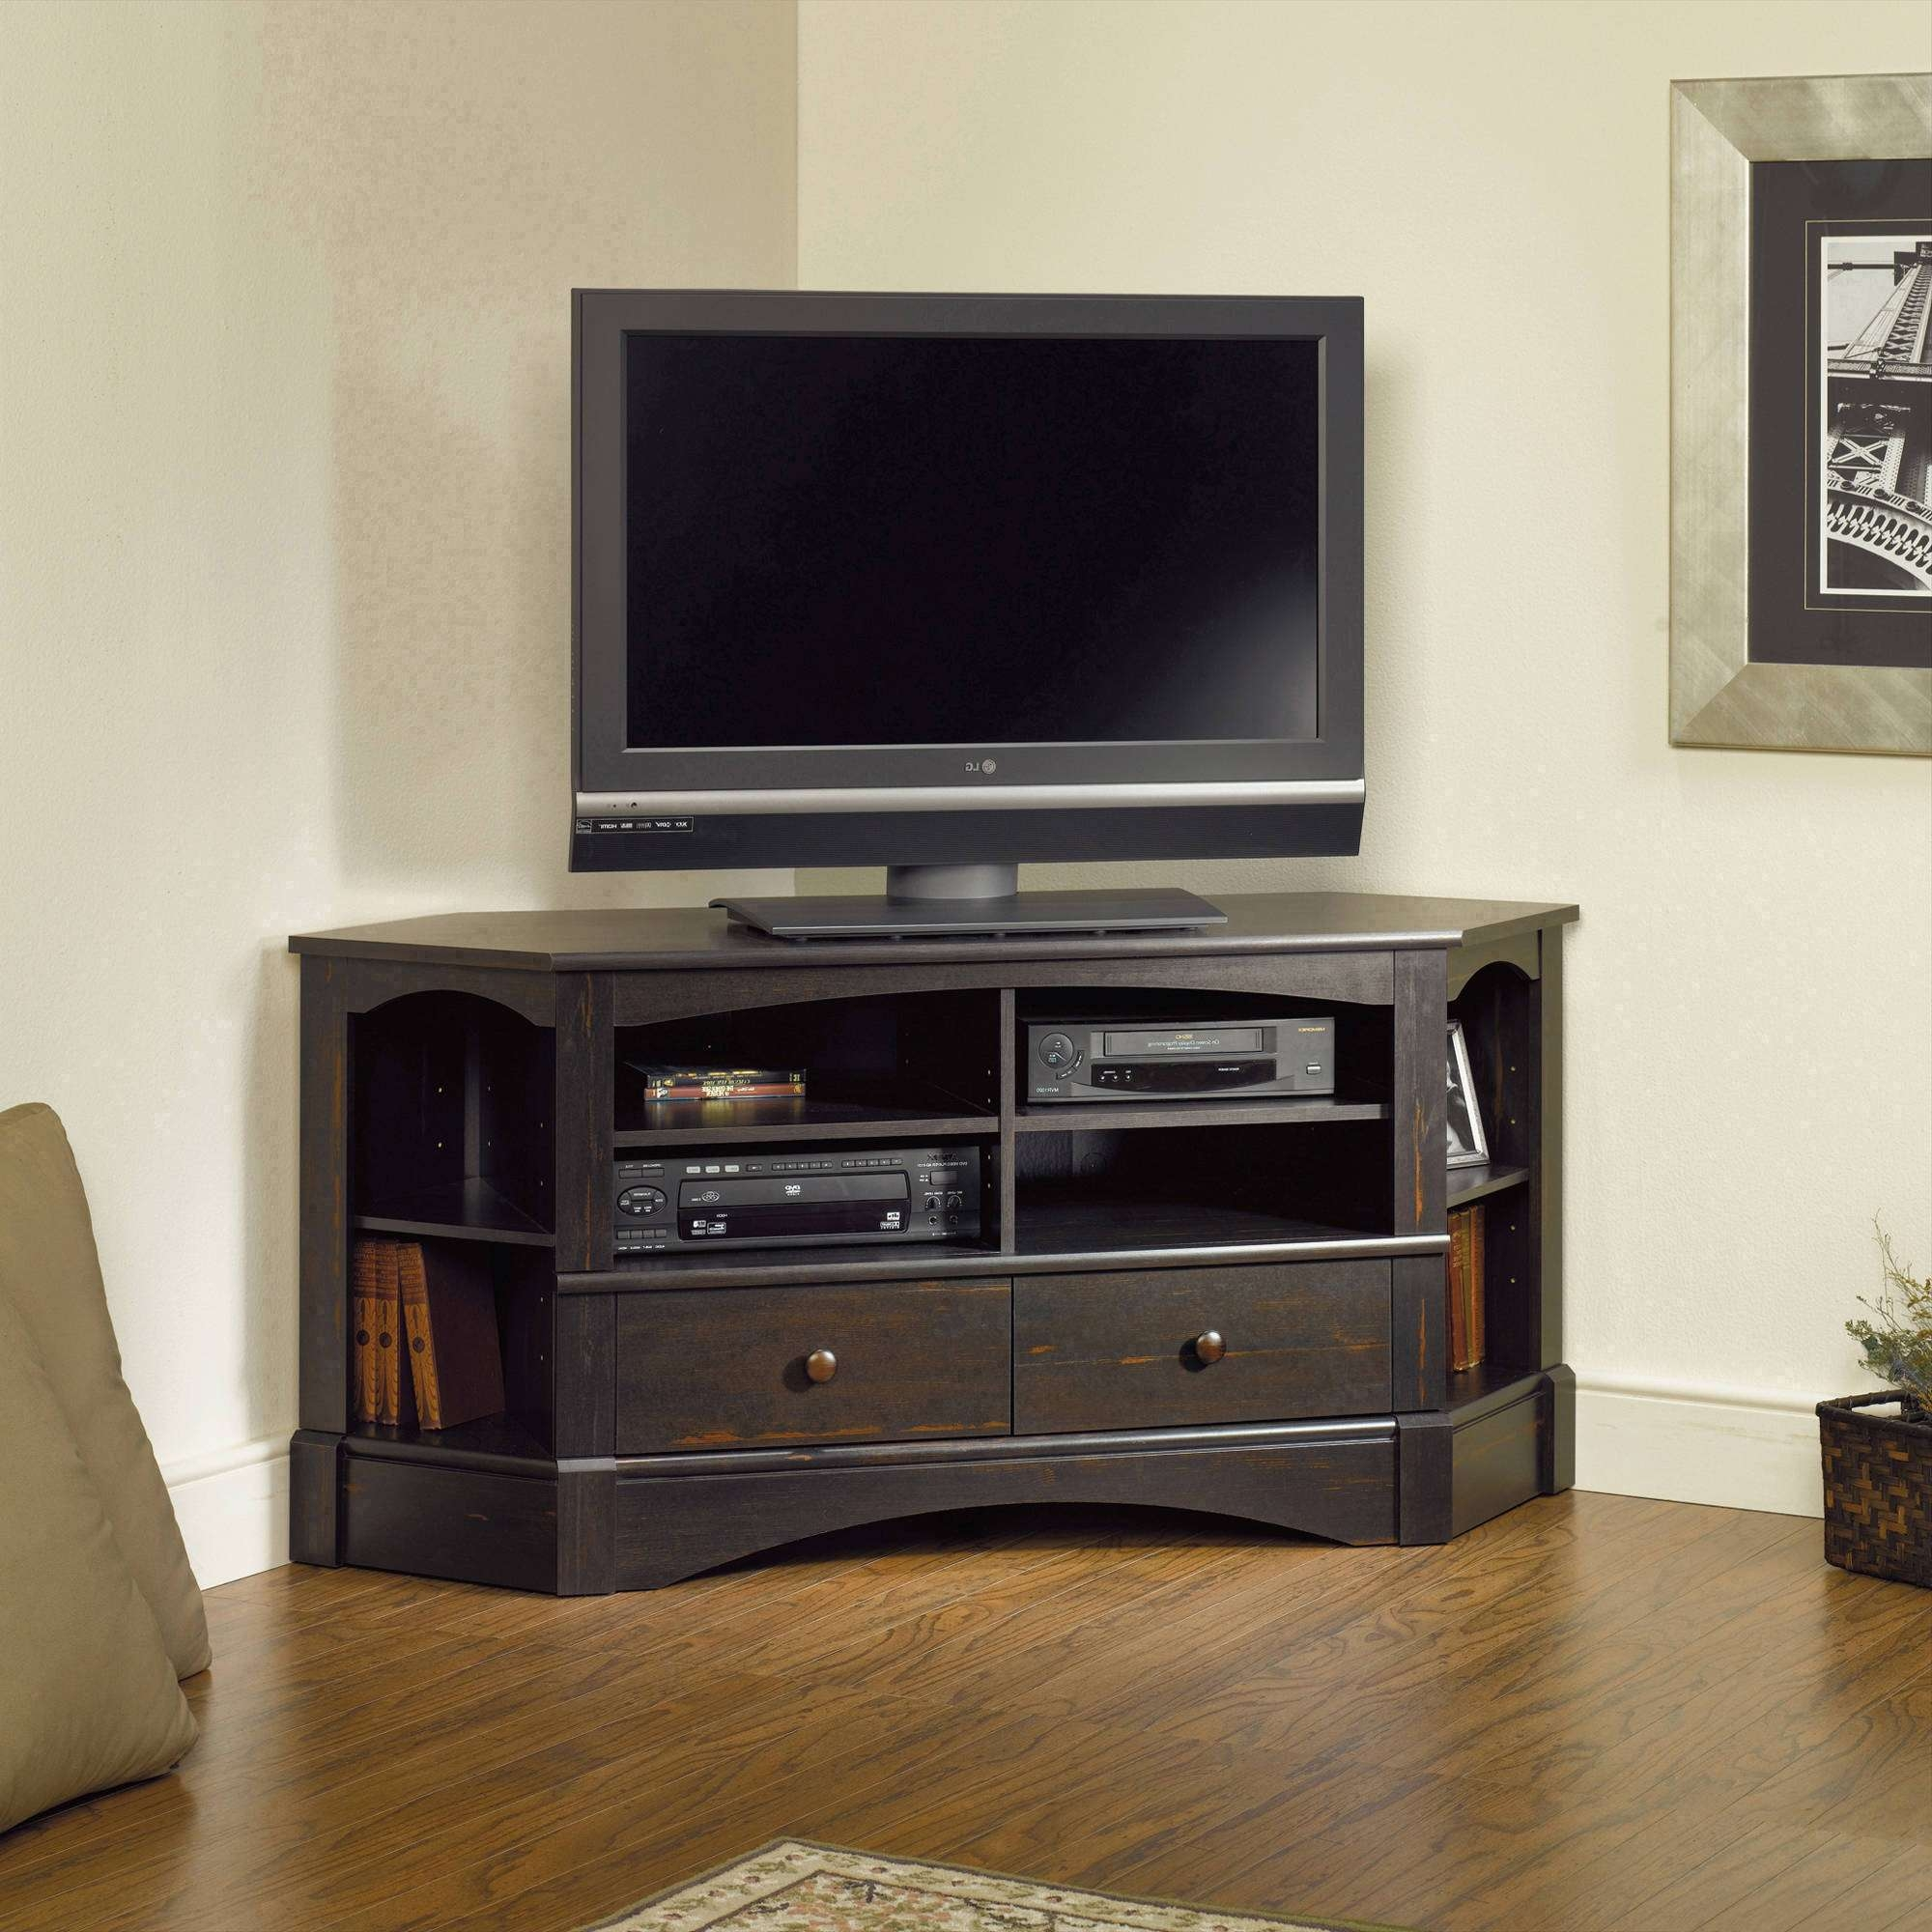 Great Corner Tv Stands For 50 Inch Tv 36 For Home Designing With Corner Tv Stands For 50 Inch Tv (View 8 of 20)